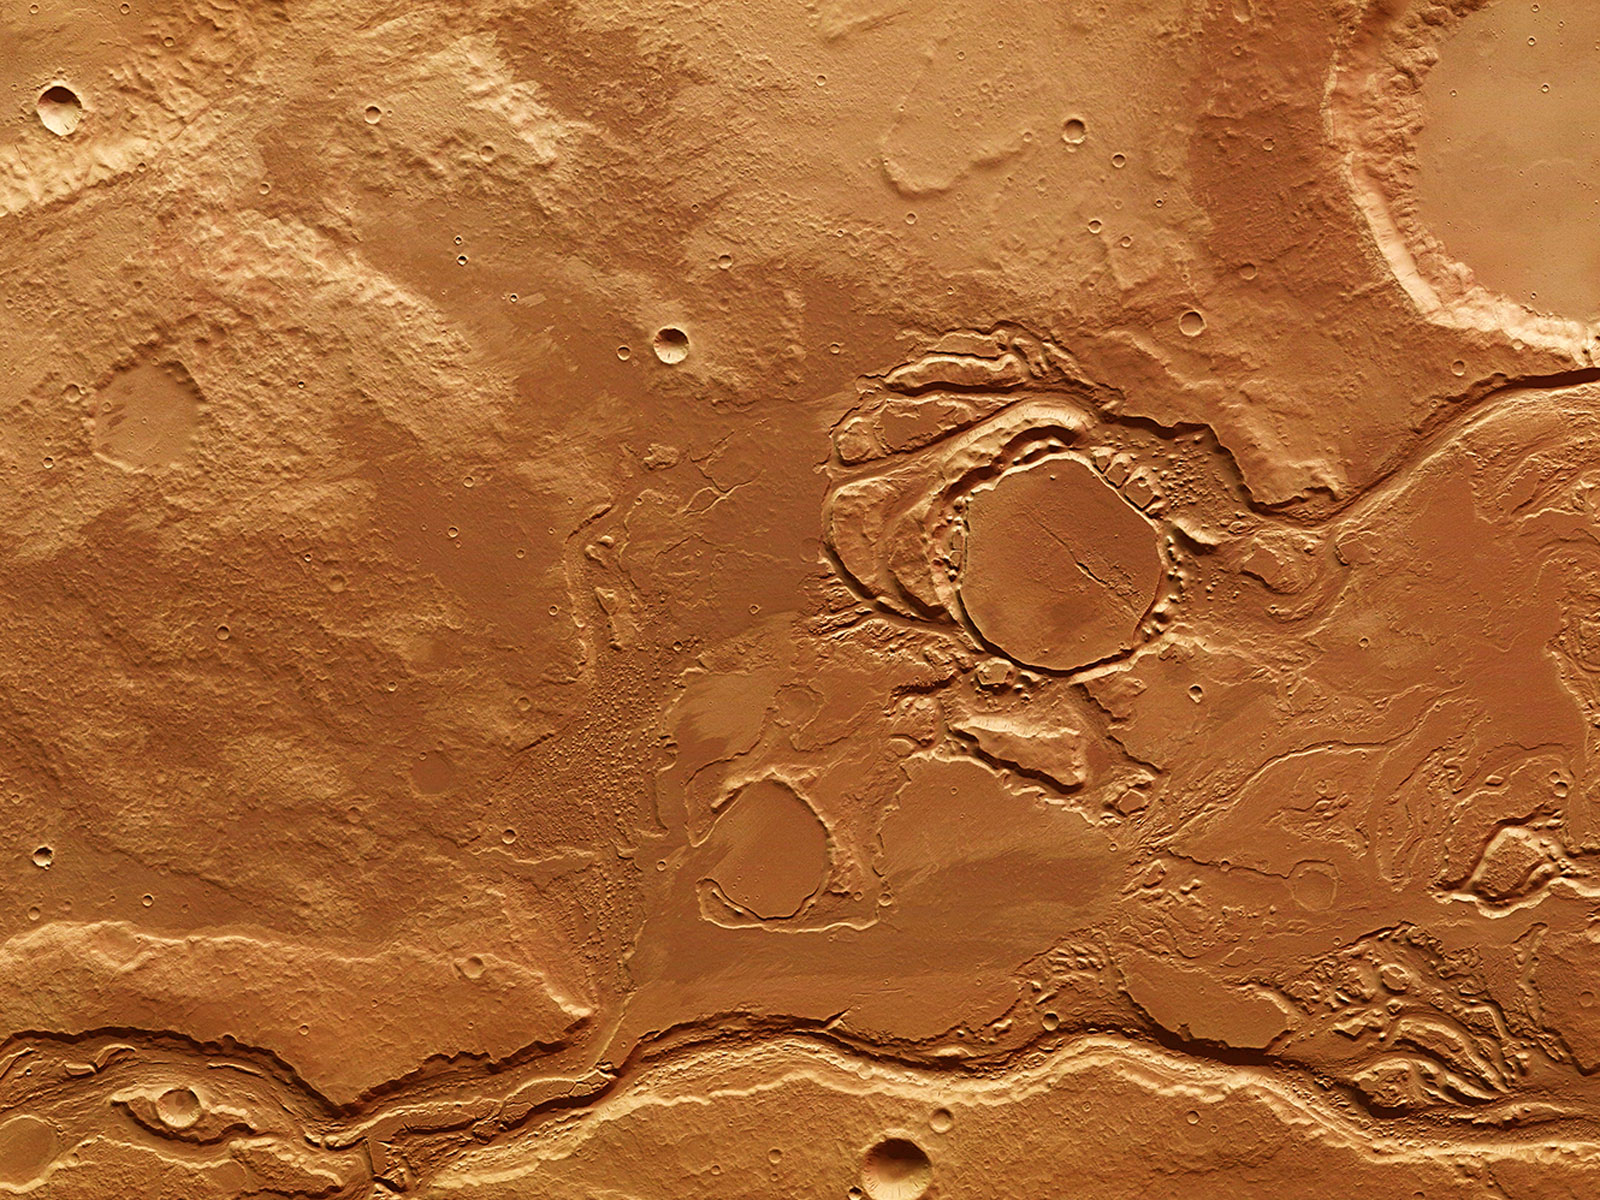 Mars' Mangala Valles | Space Wallpaper